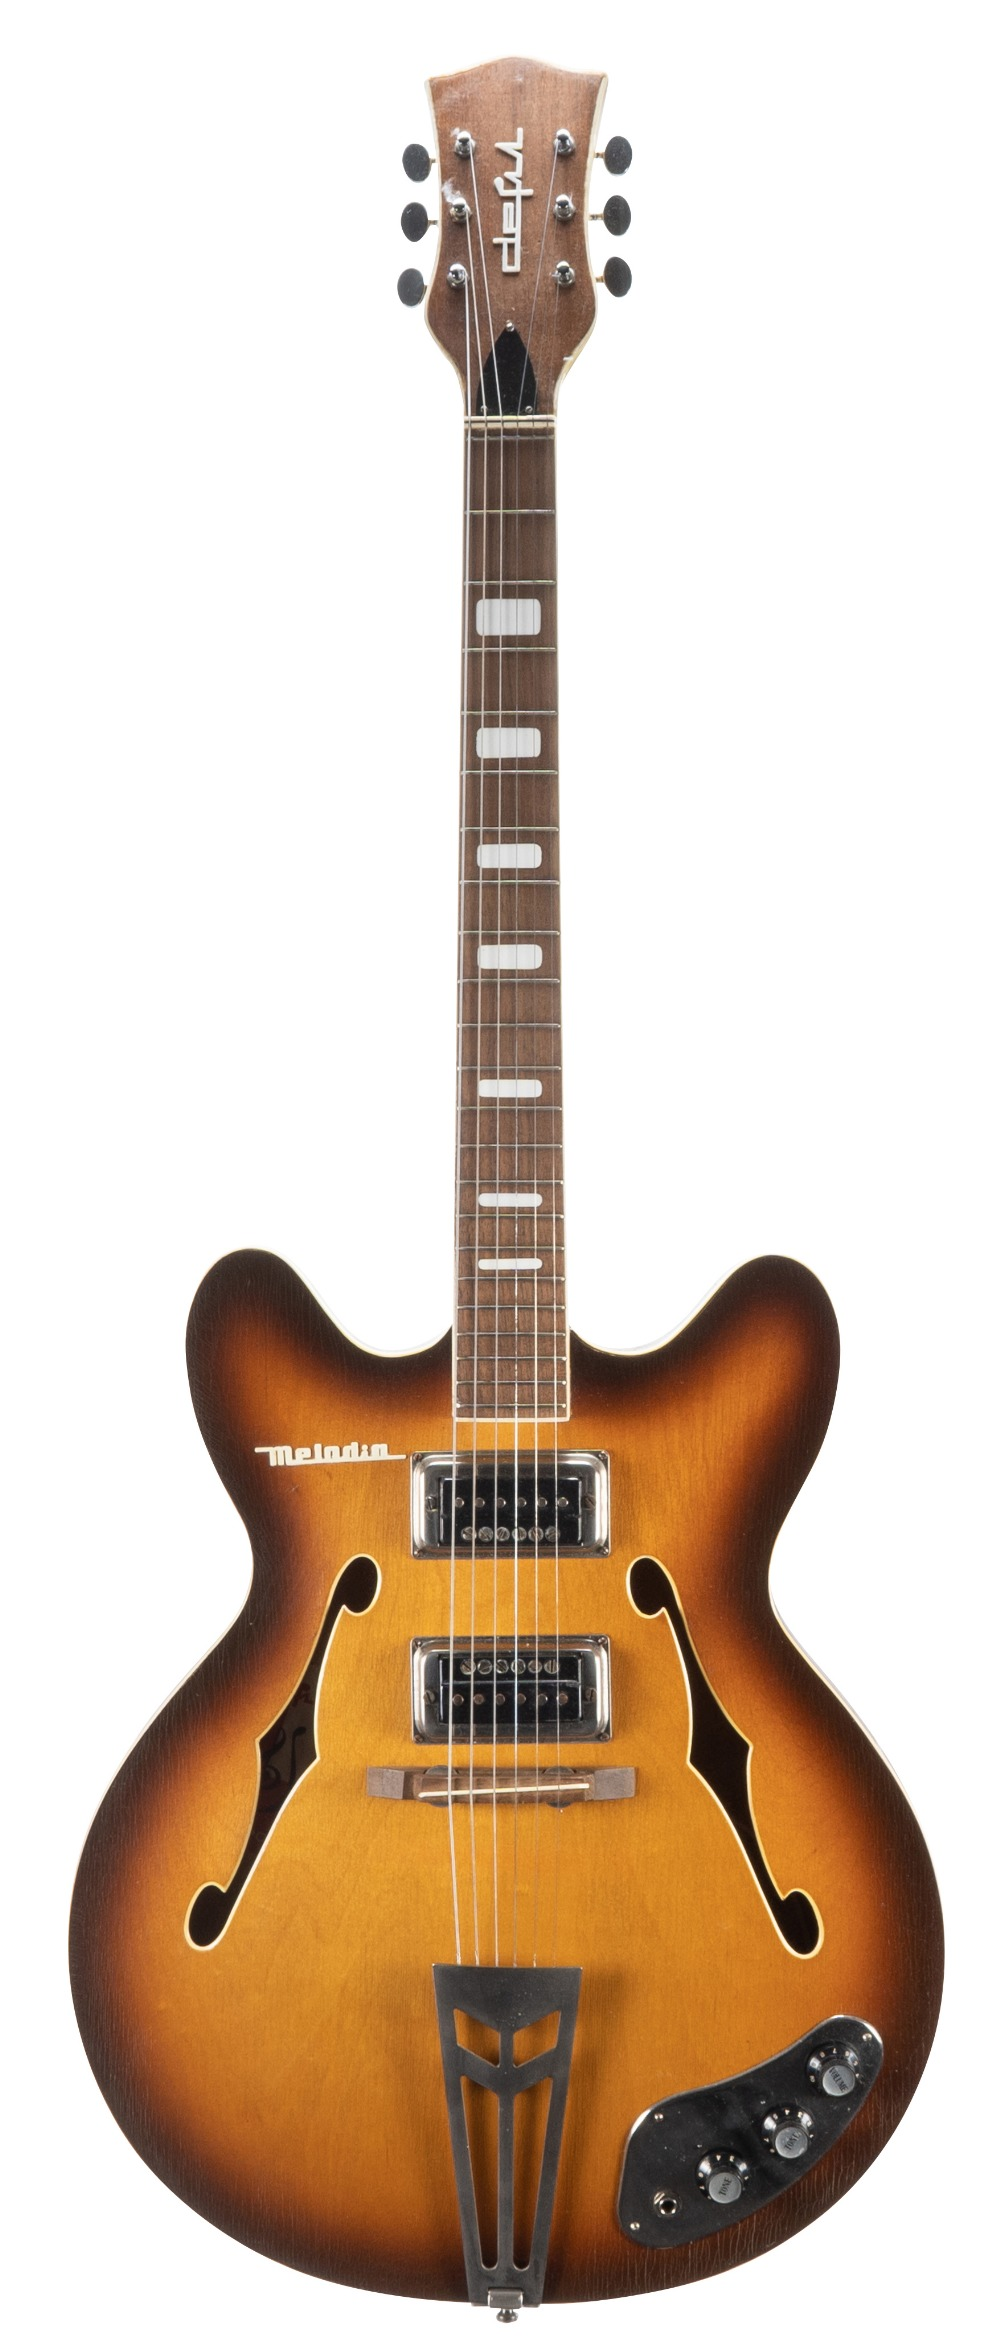 1970s Defil Melodia hollow body electric guitar, made in Poland; Finish: tobacco sunburst, heavy